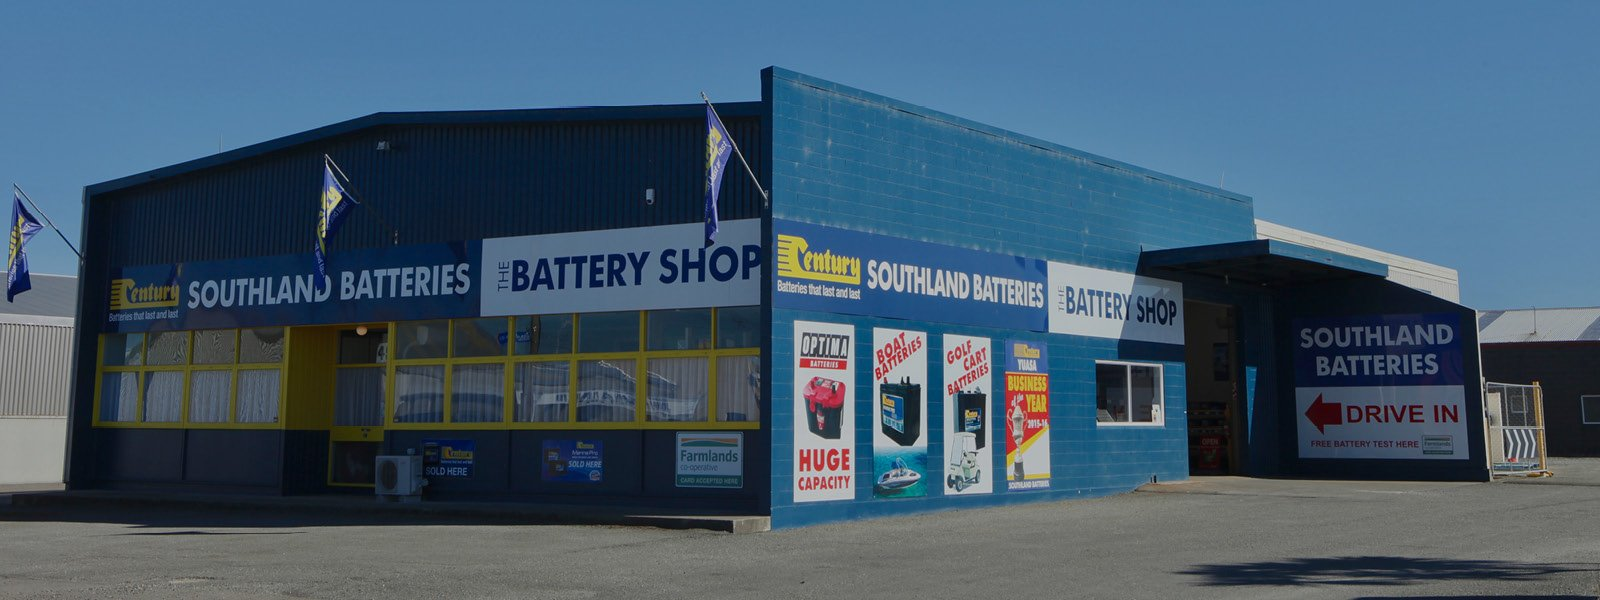 Southland Batteries Shop